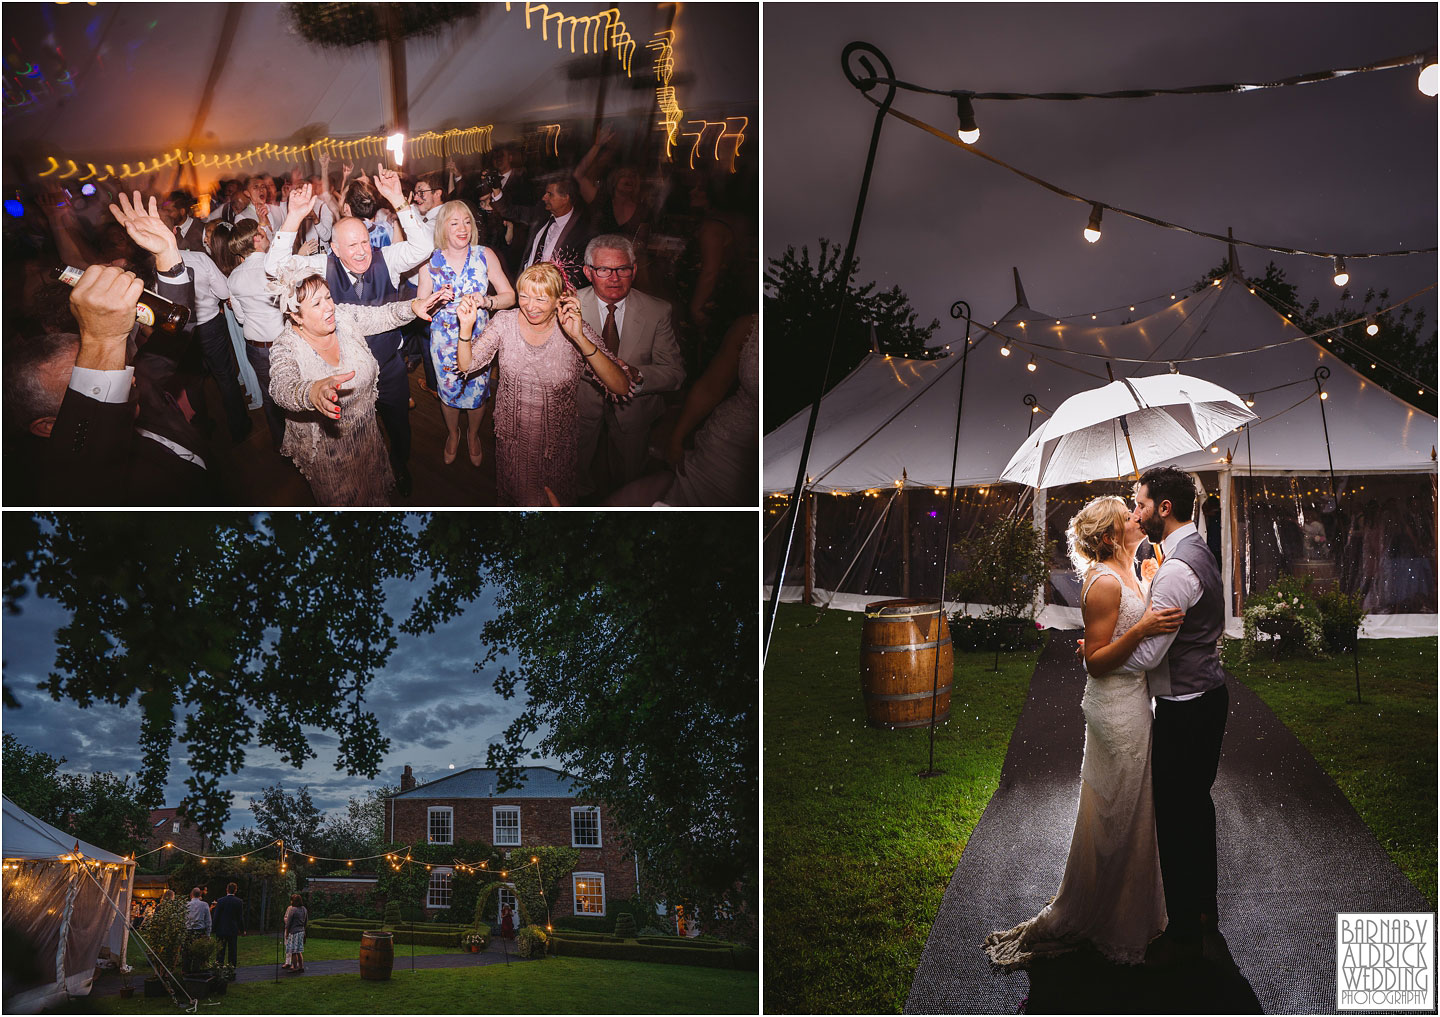 Evening wedding photos of a Papakata Sperry Tent Garden Wedding, Garden Marquee Wedding, Papakata Sperry Tent Wedding, Sperry Tent Marquee Wedding, Yorkshire garden Marquee Wedding company